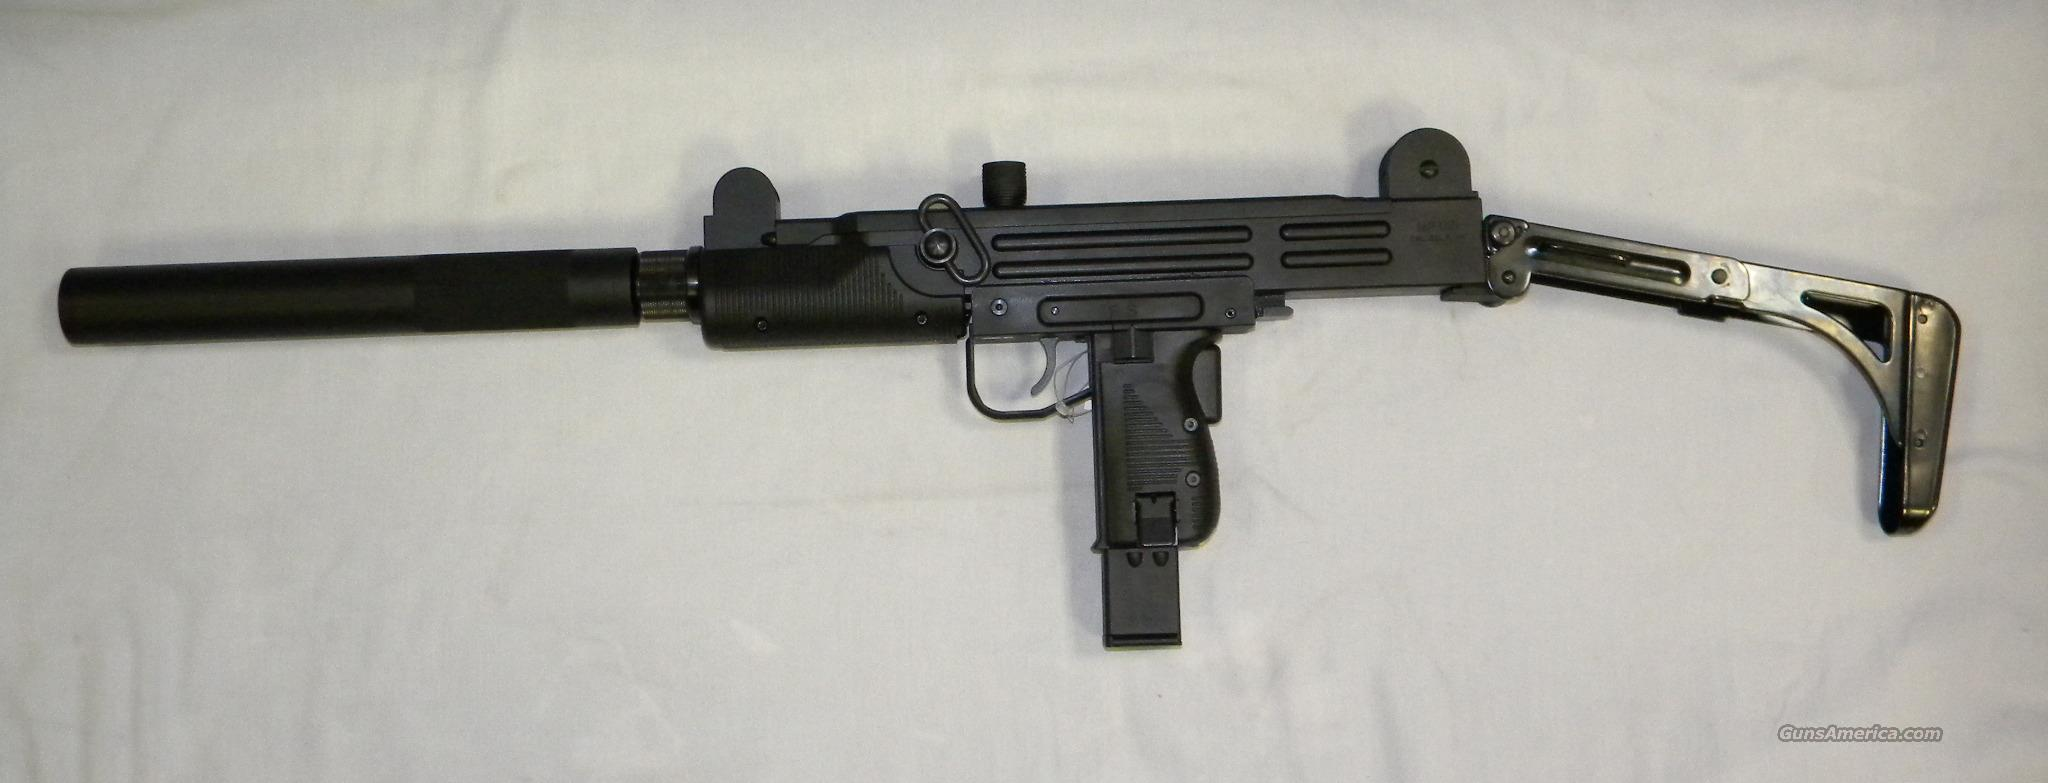 I.W.I./Walther MP-Uzi Rifle, .22 LR Semi-Auto  Guns > Rifles > Walther Rifles